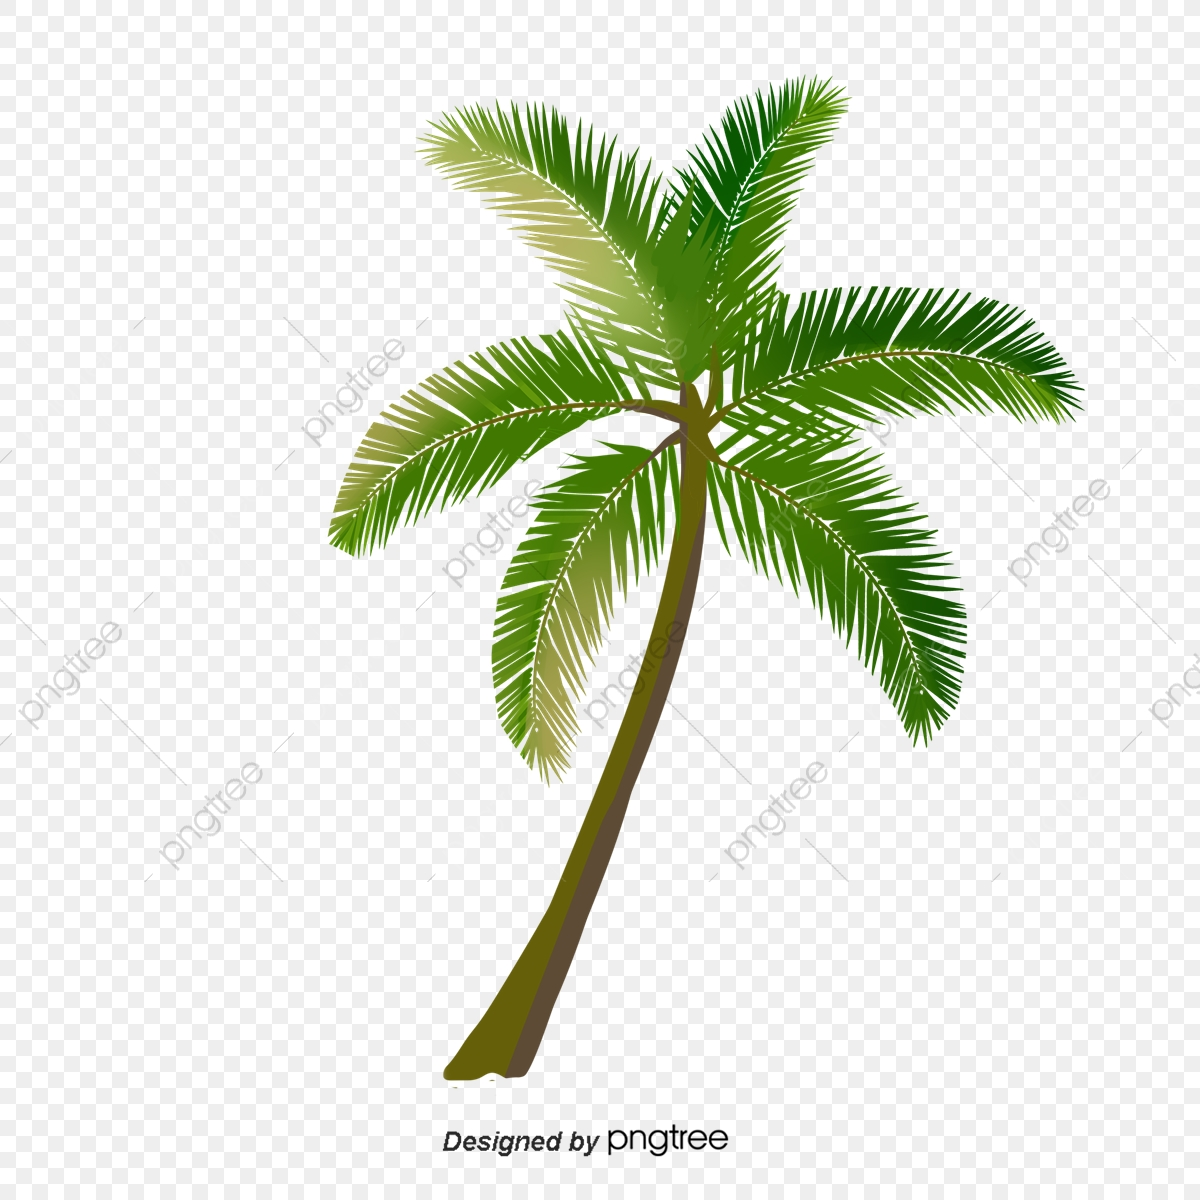 Cartoon Green Palm Tree, Clip Art, Hand Painted, Leaf PNG and Vector.